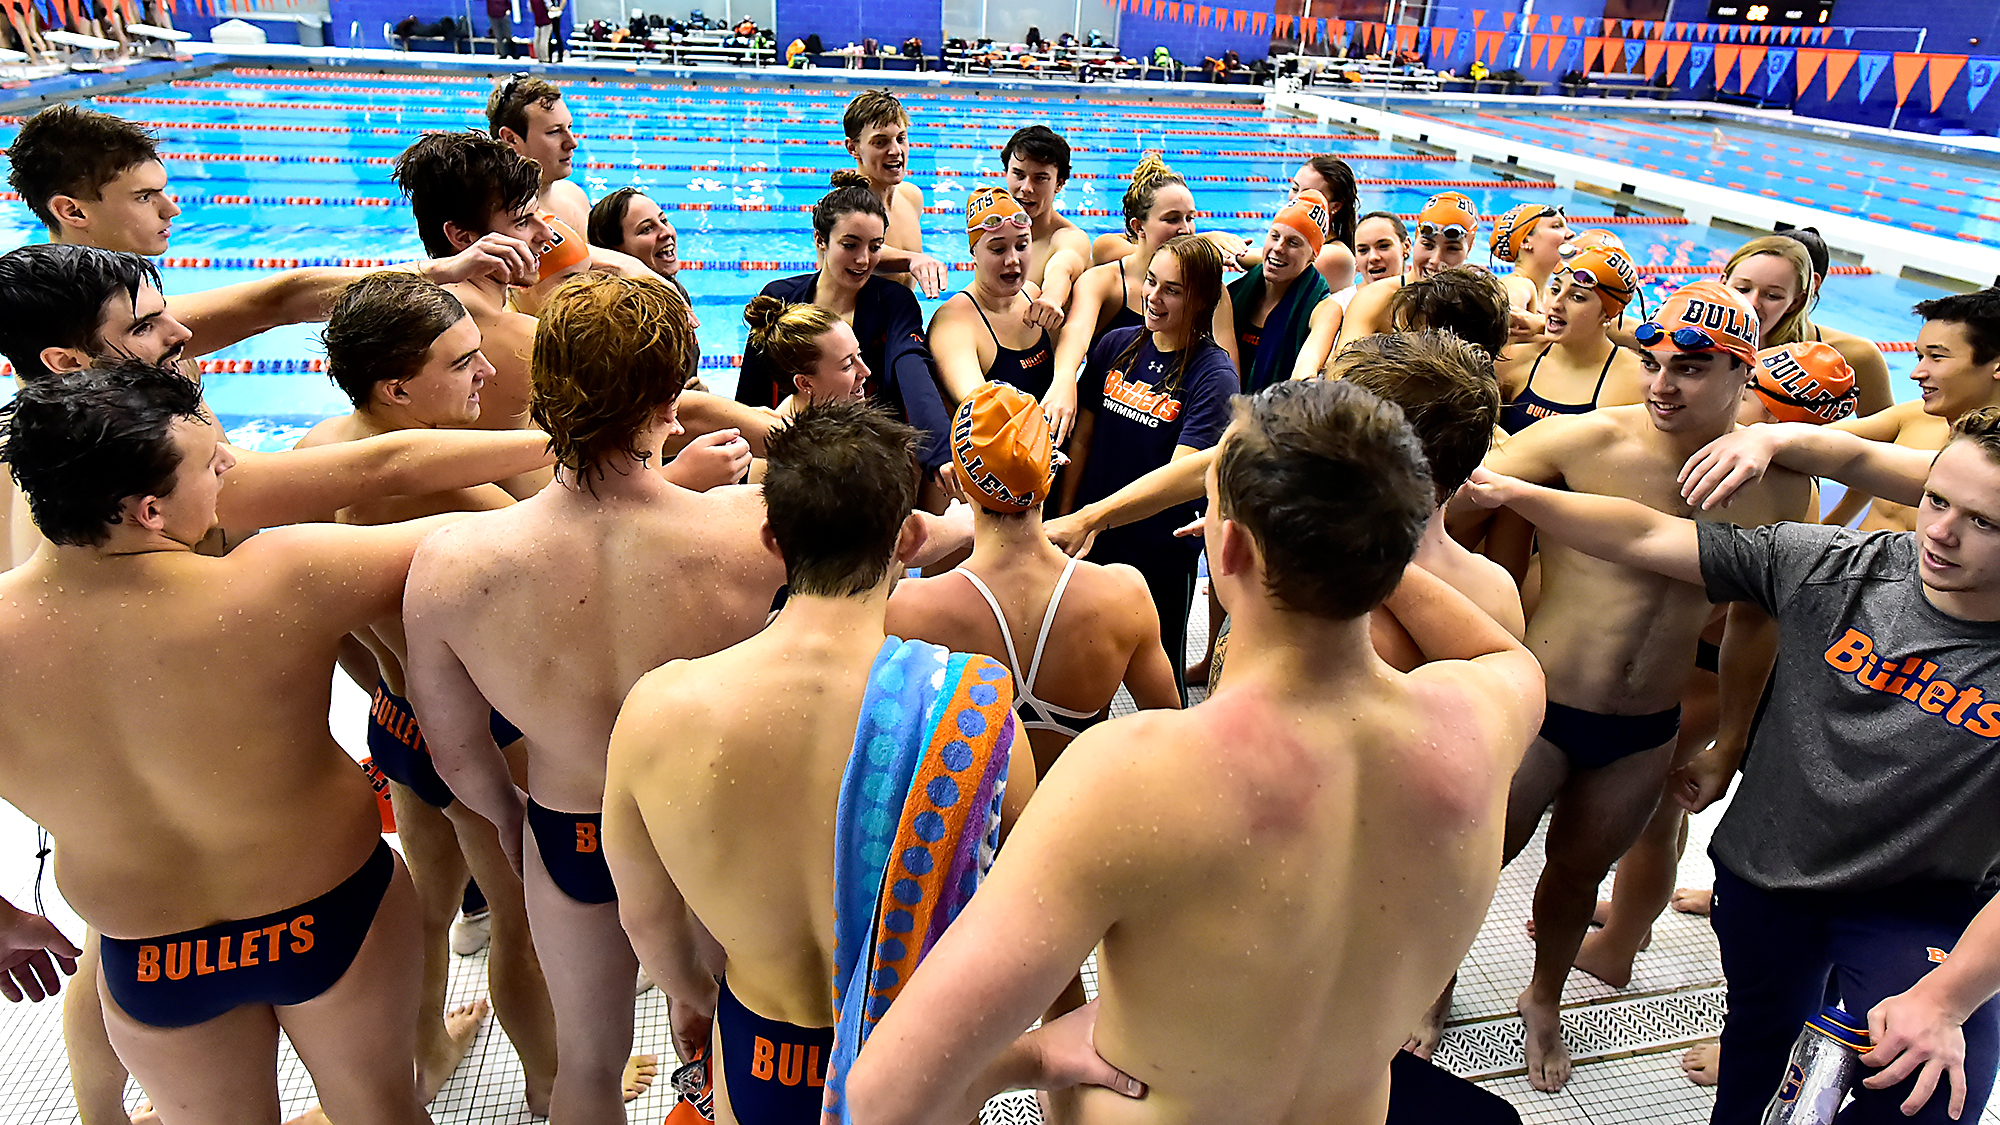 The Bullets swim teams huddle together on the pool deck.